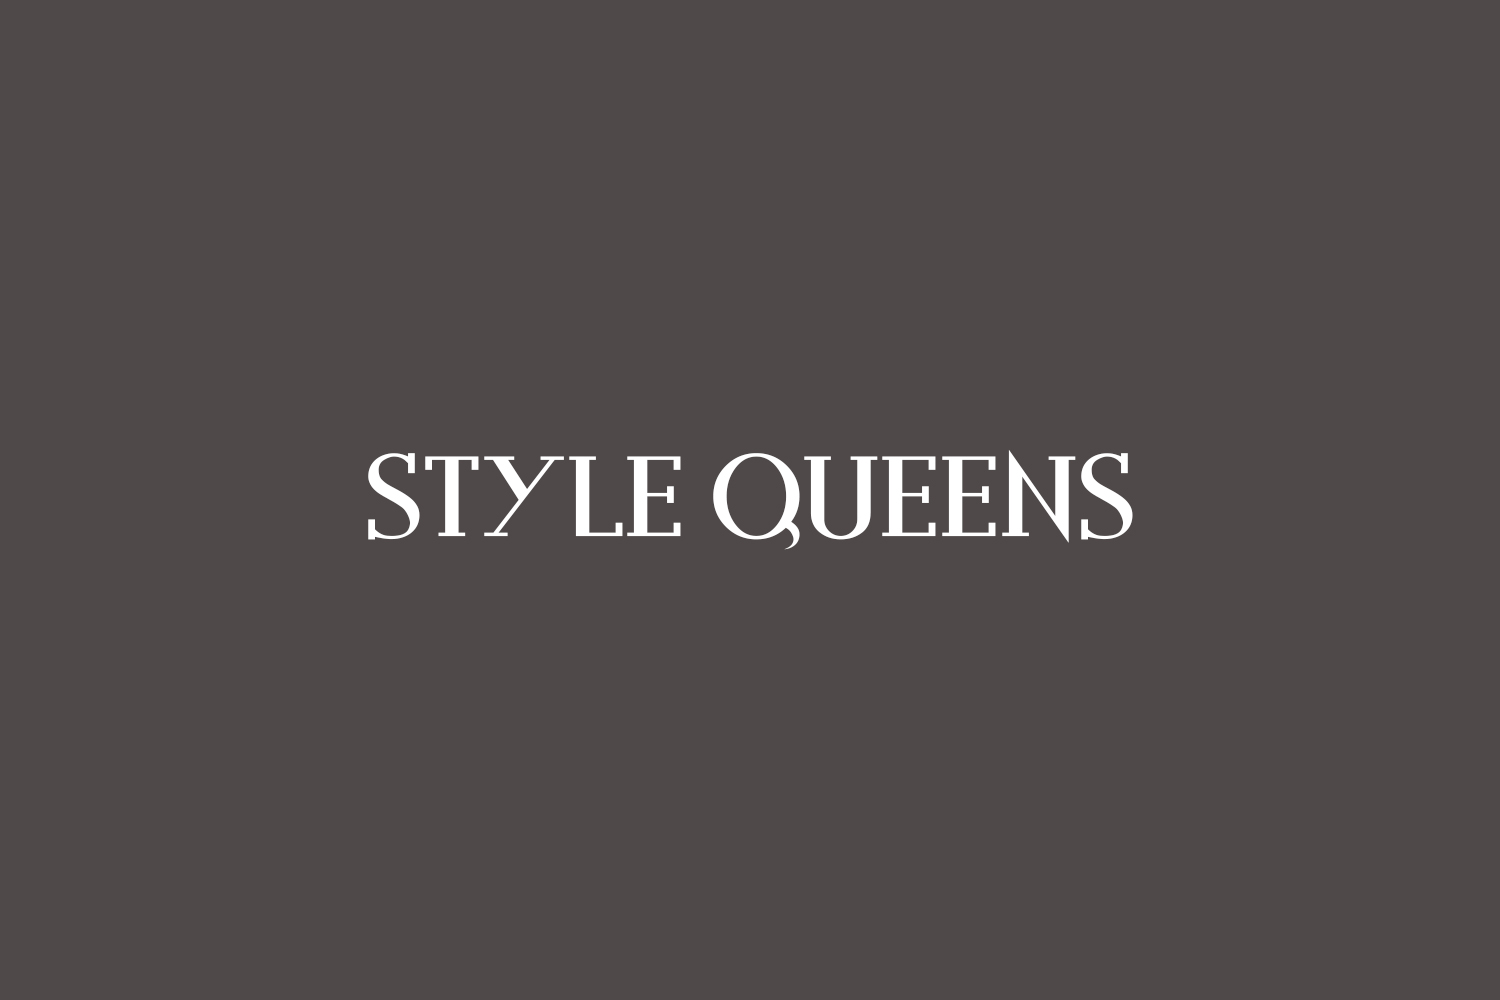 Style Queens Free Font